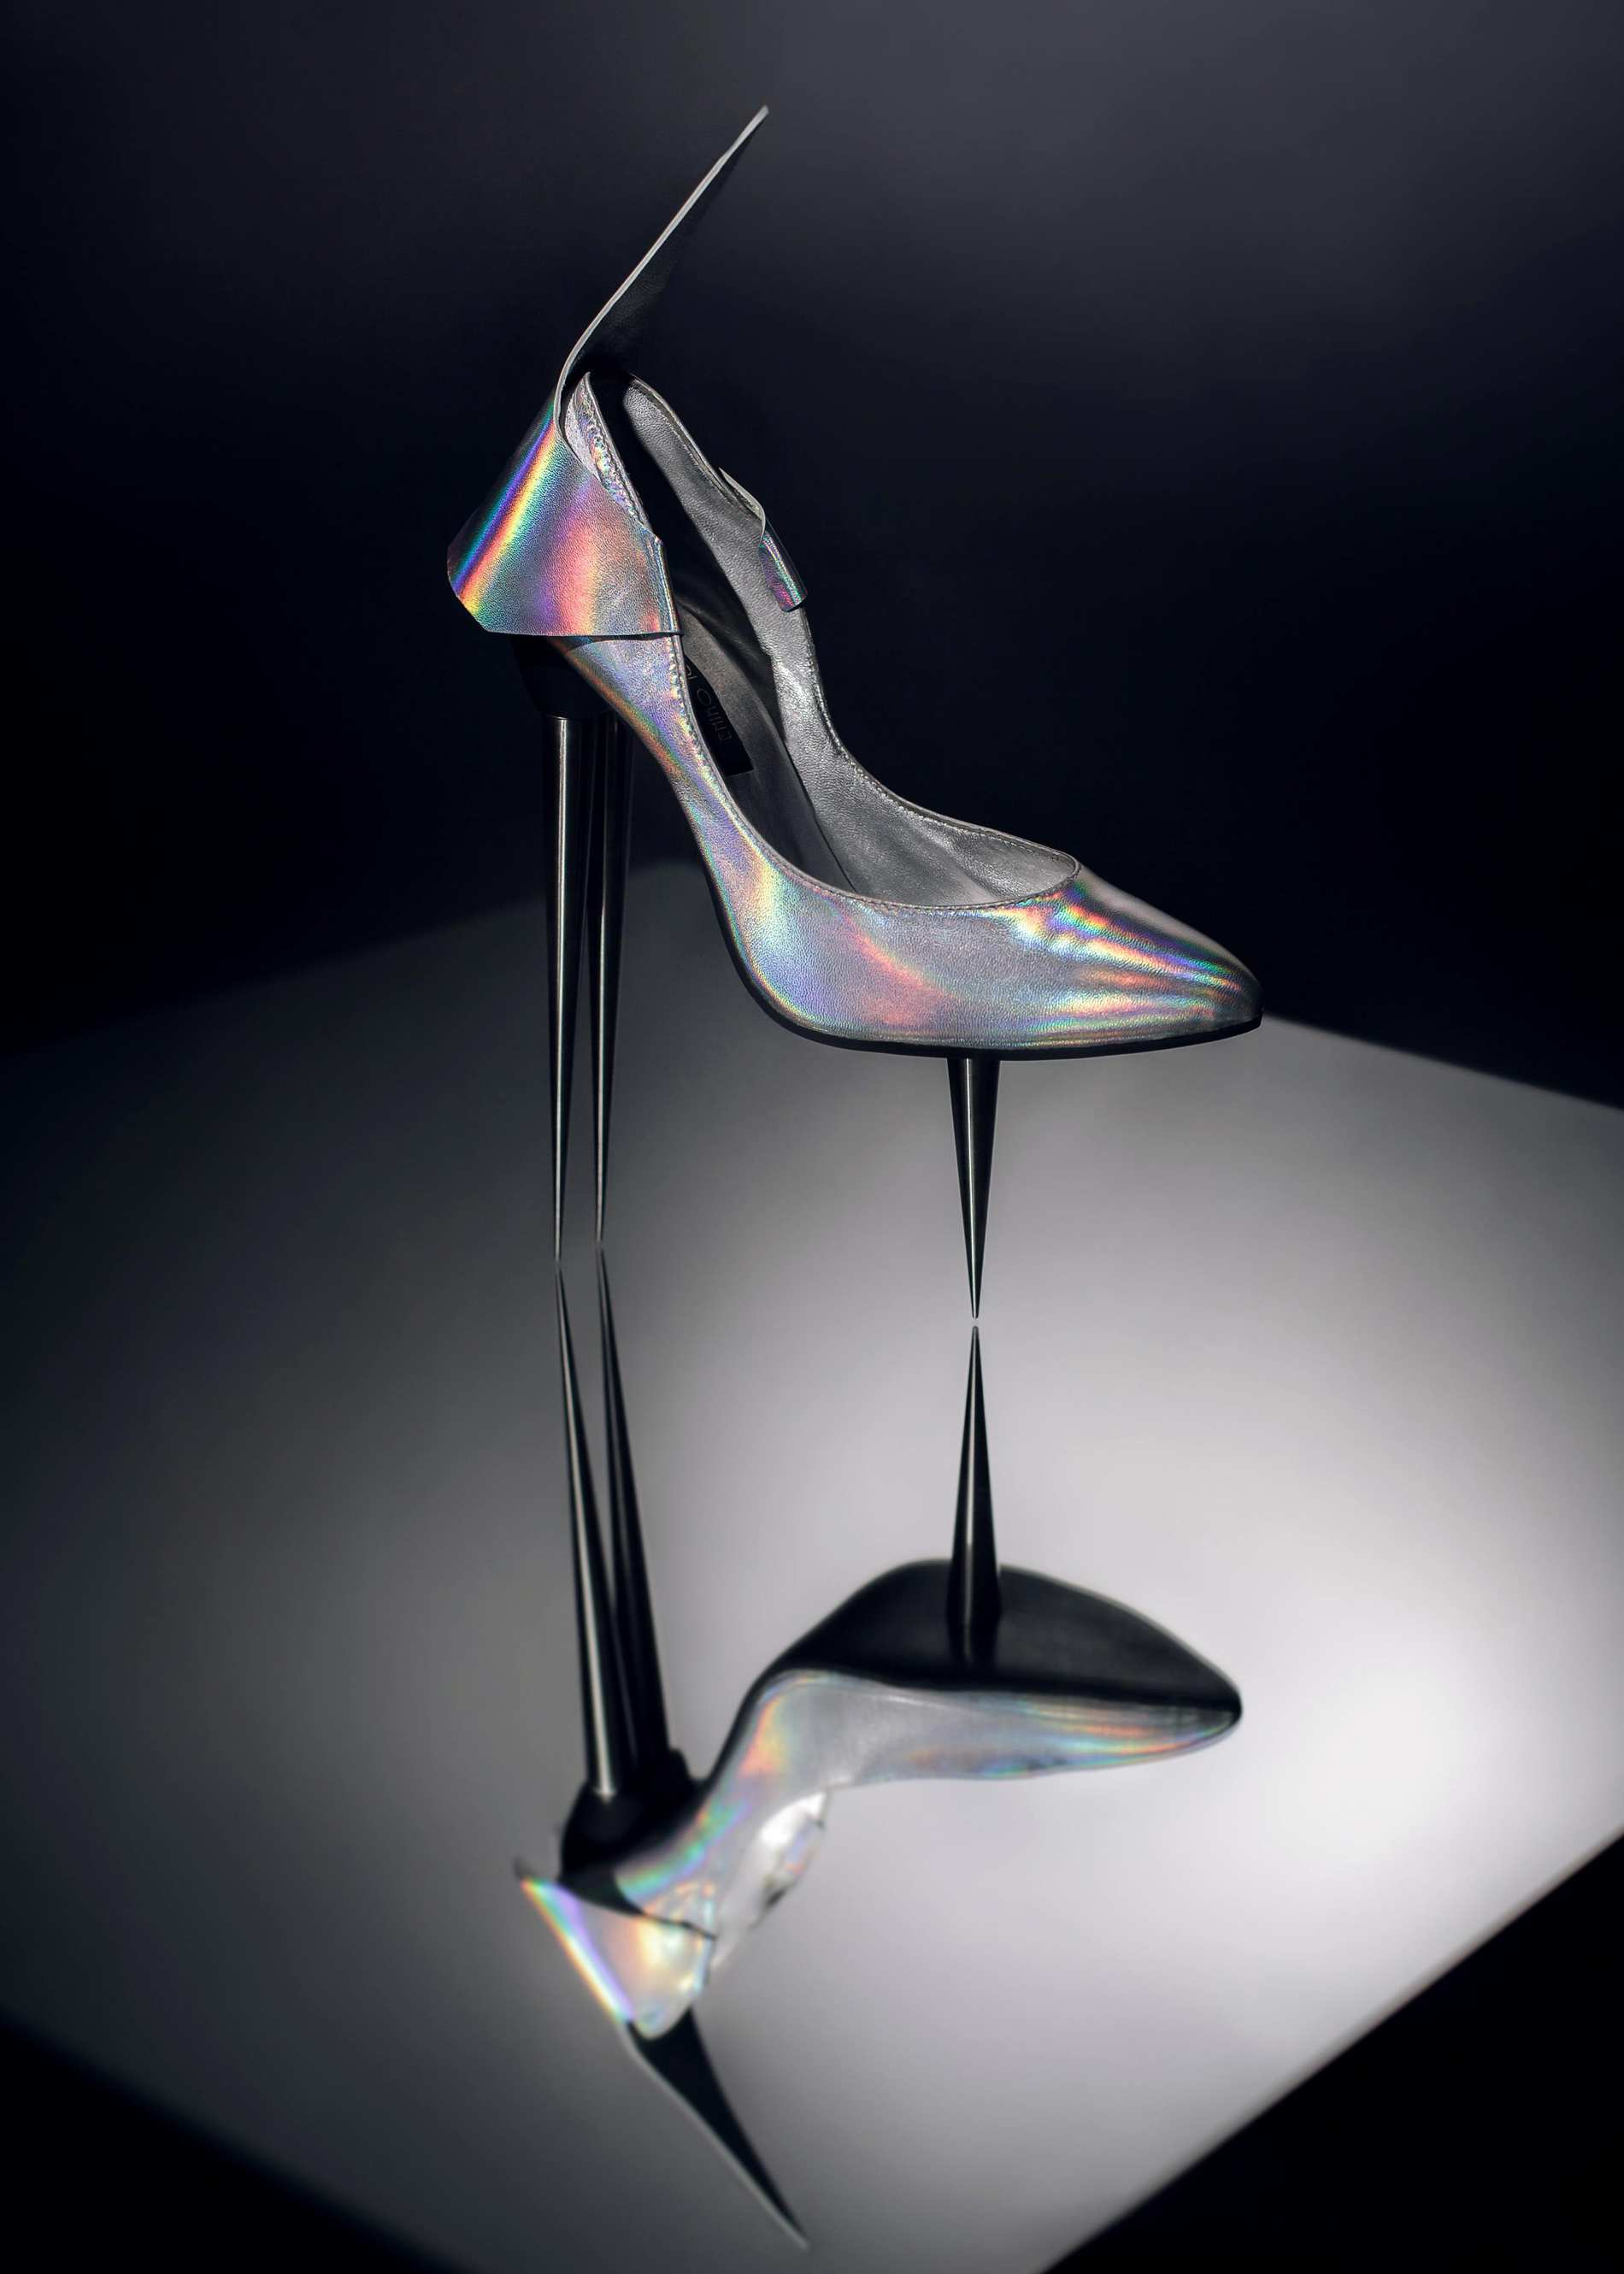 Avantgarde women's shoe design